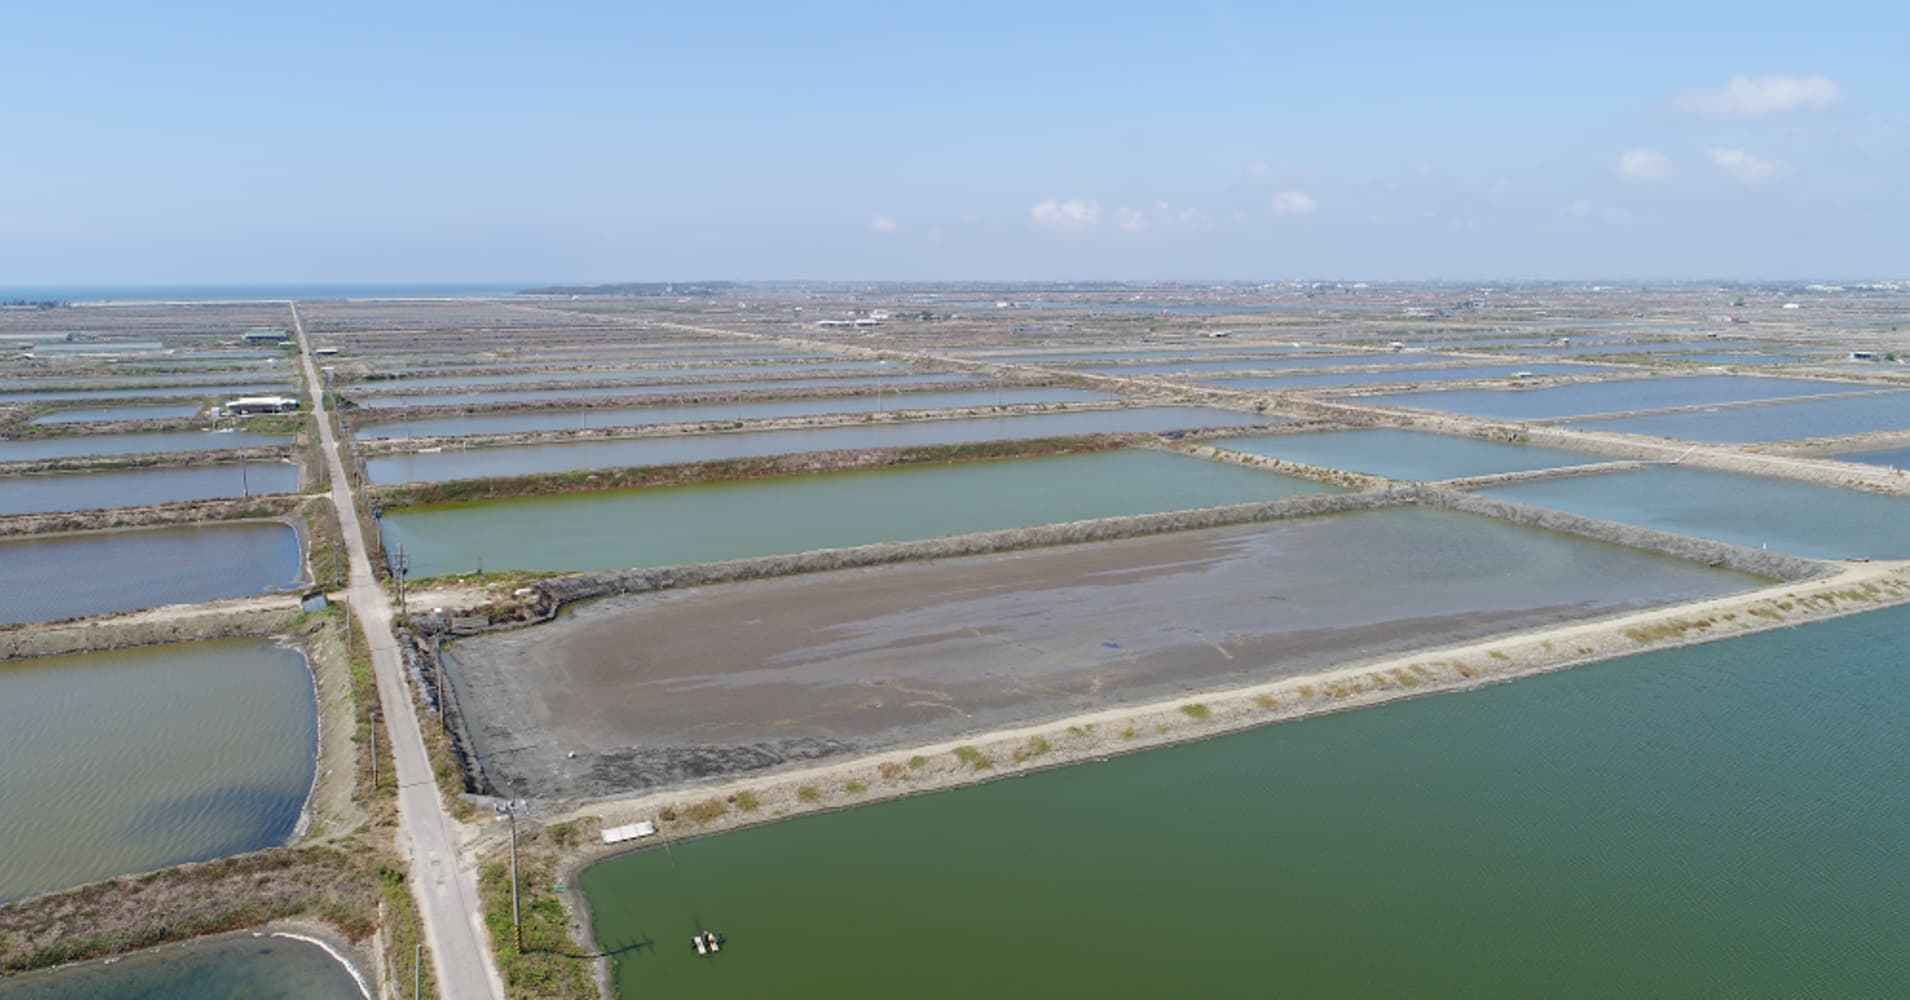 Google is building a solar power project above fishing ponds in Taiwan, its first in Asia